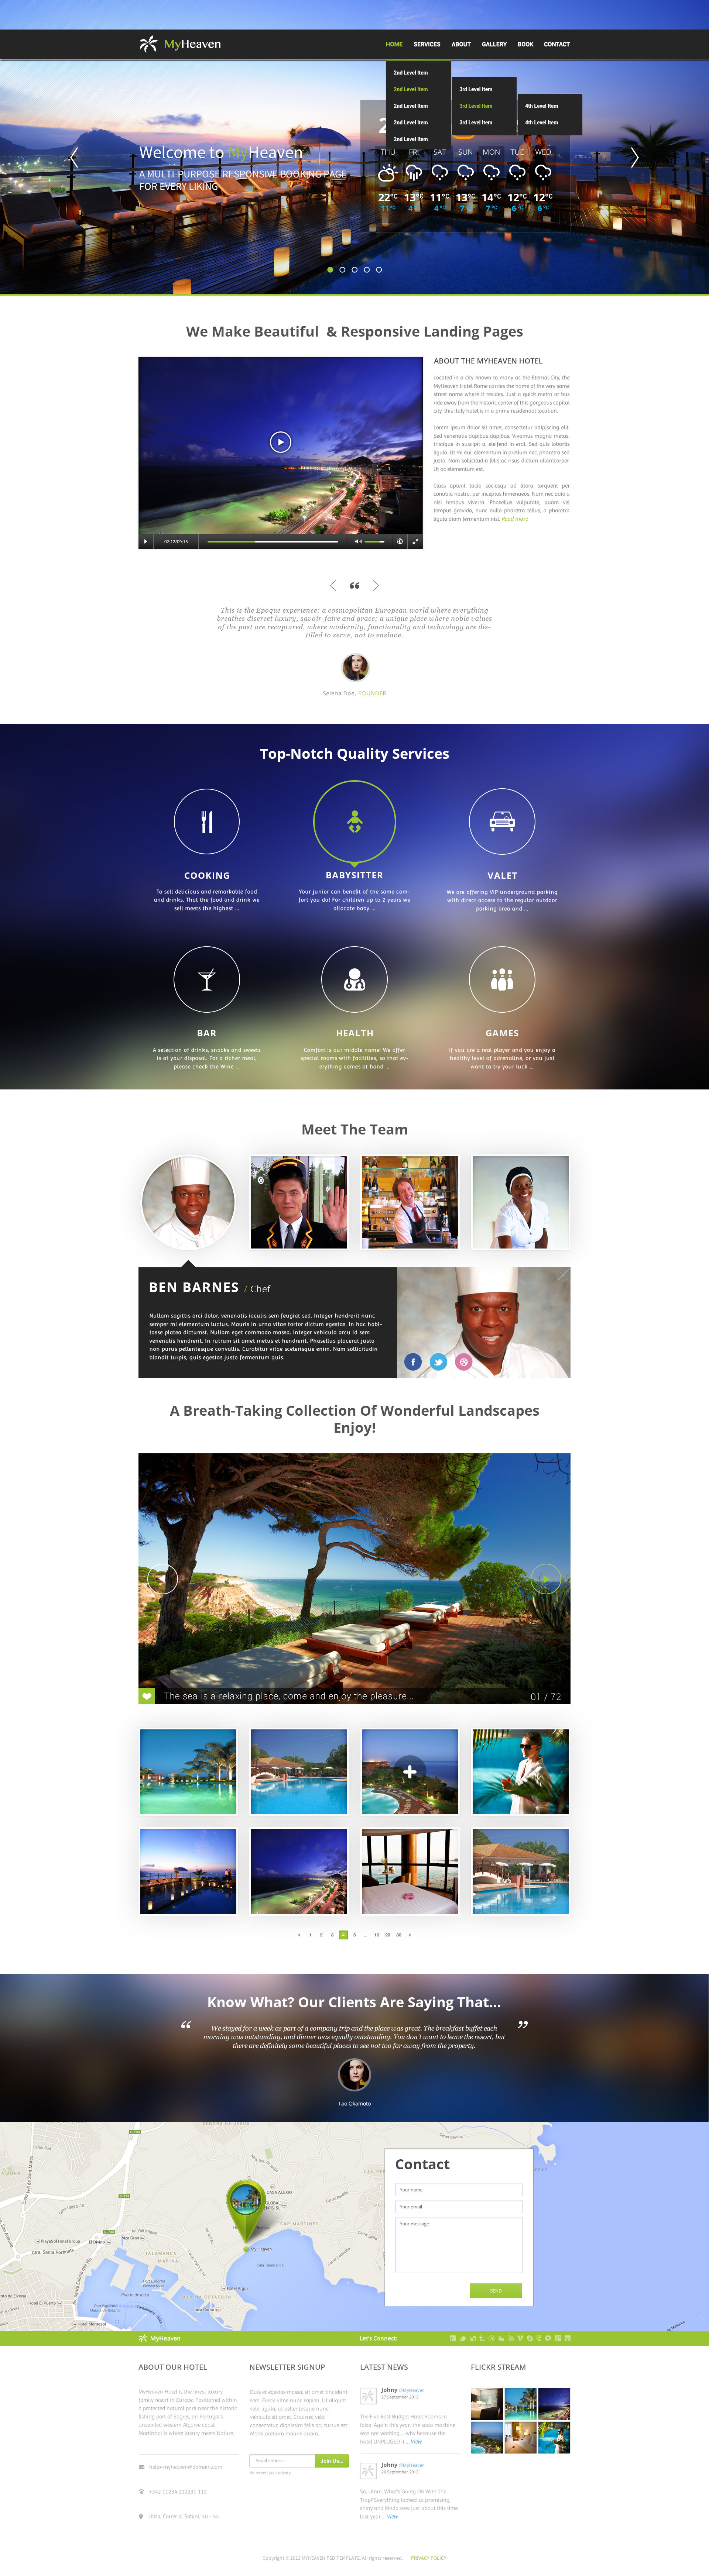 My Heaven - Online Booking PSD Template - Desktop - Home Page